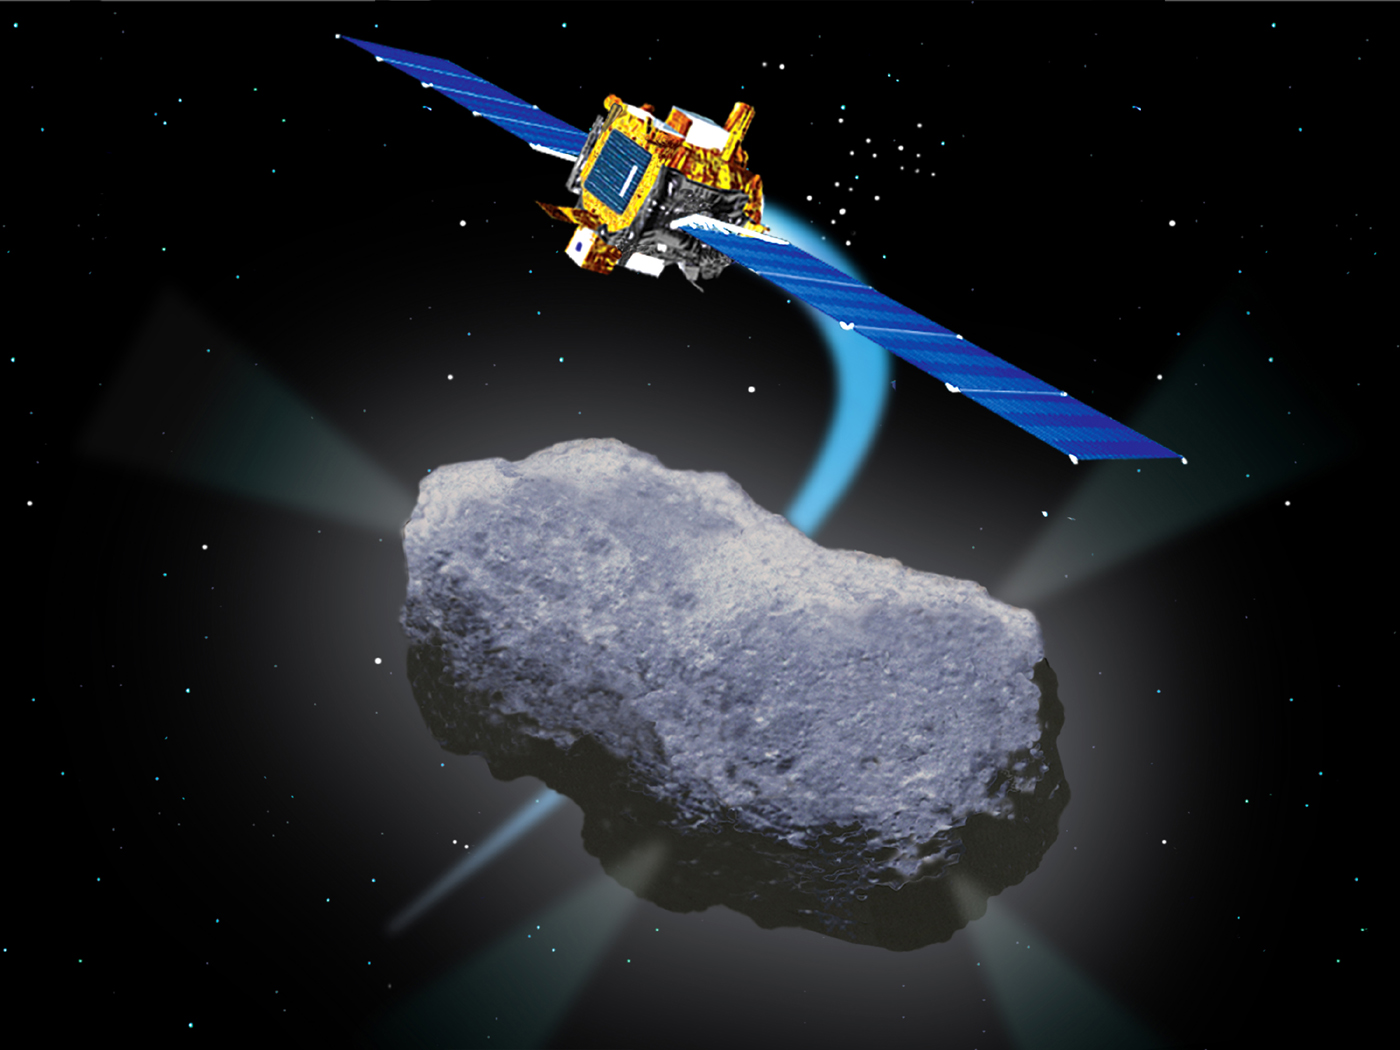 Images and Videos - Deep Space 1's Flyby of Comet Borrelly